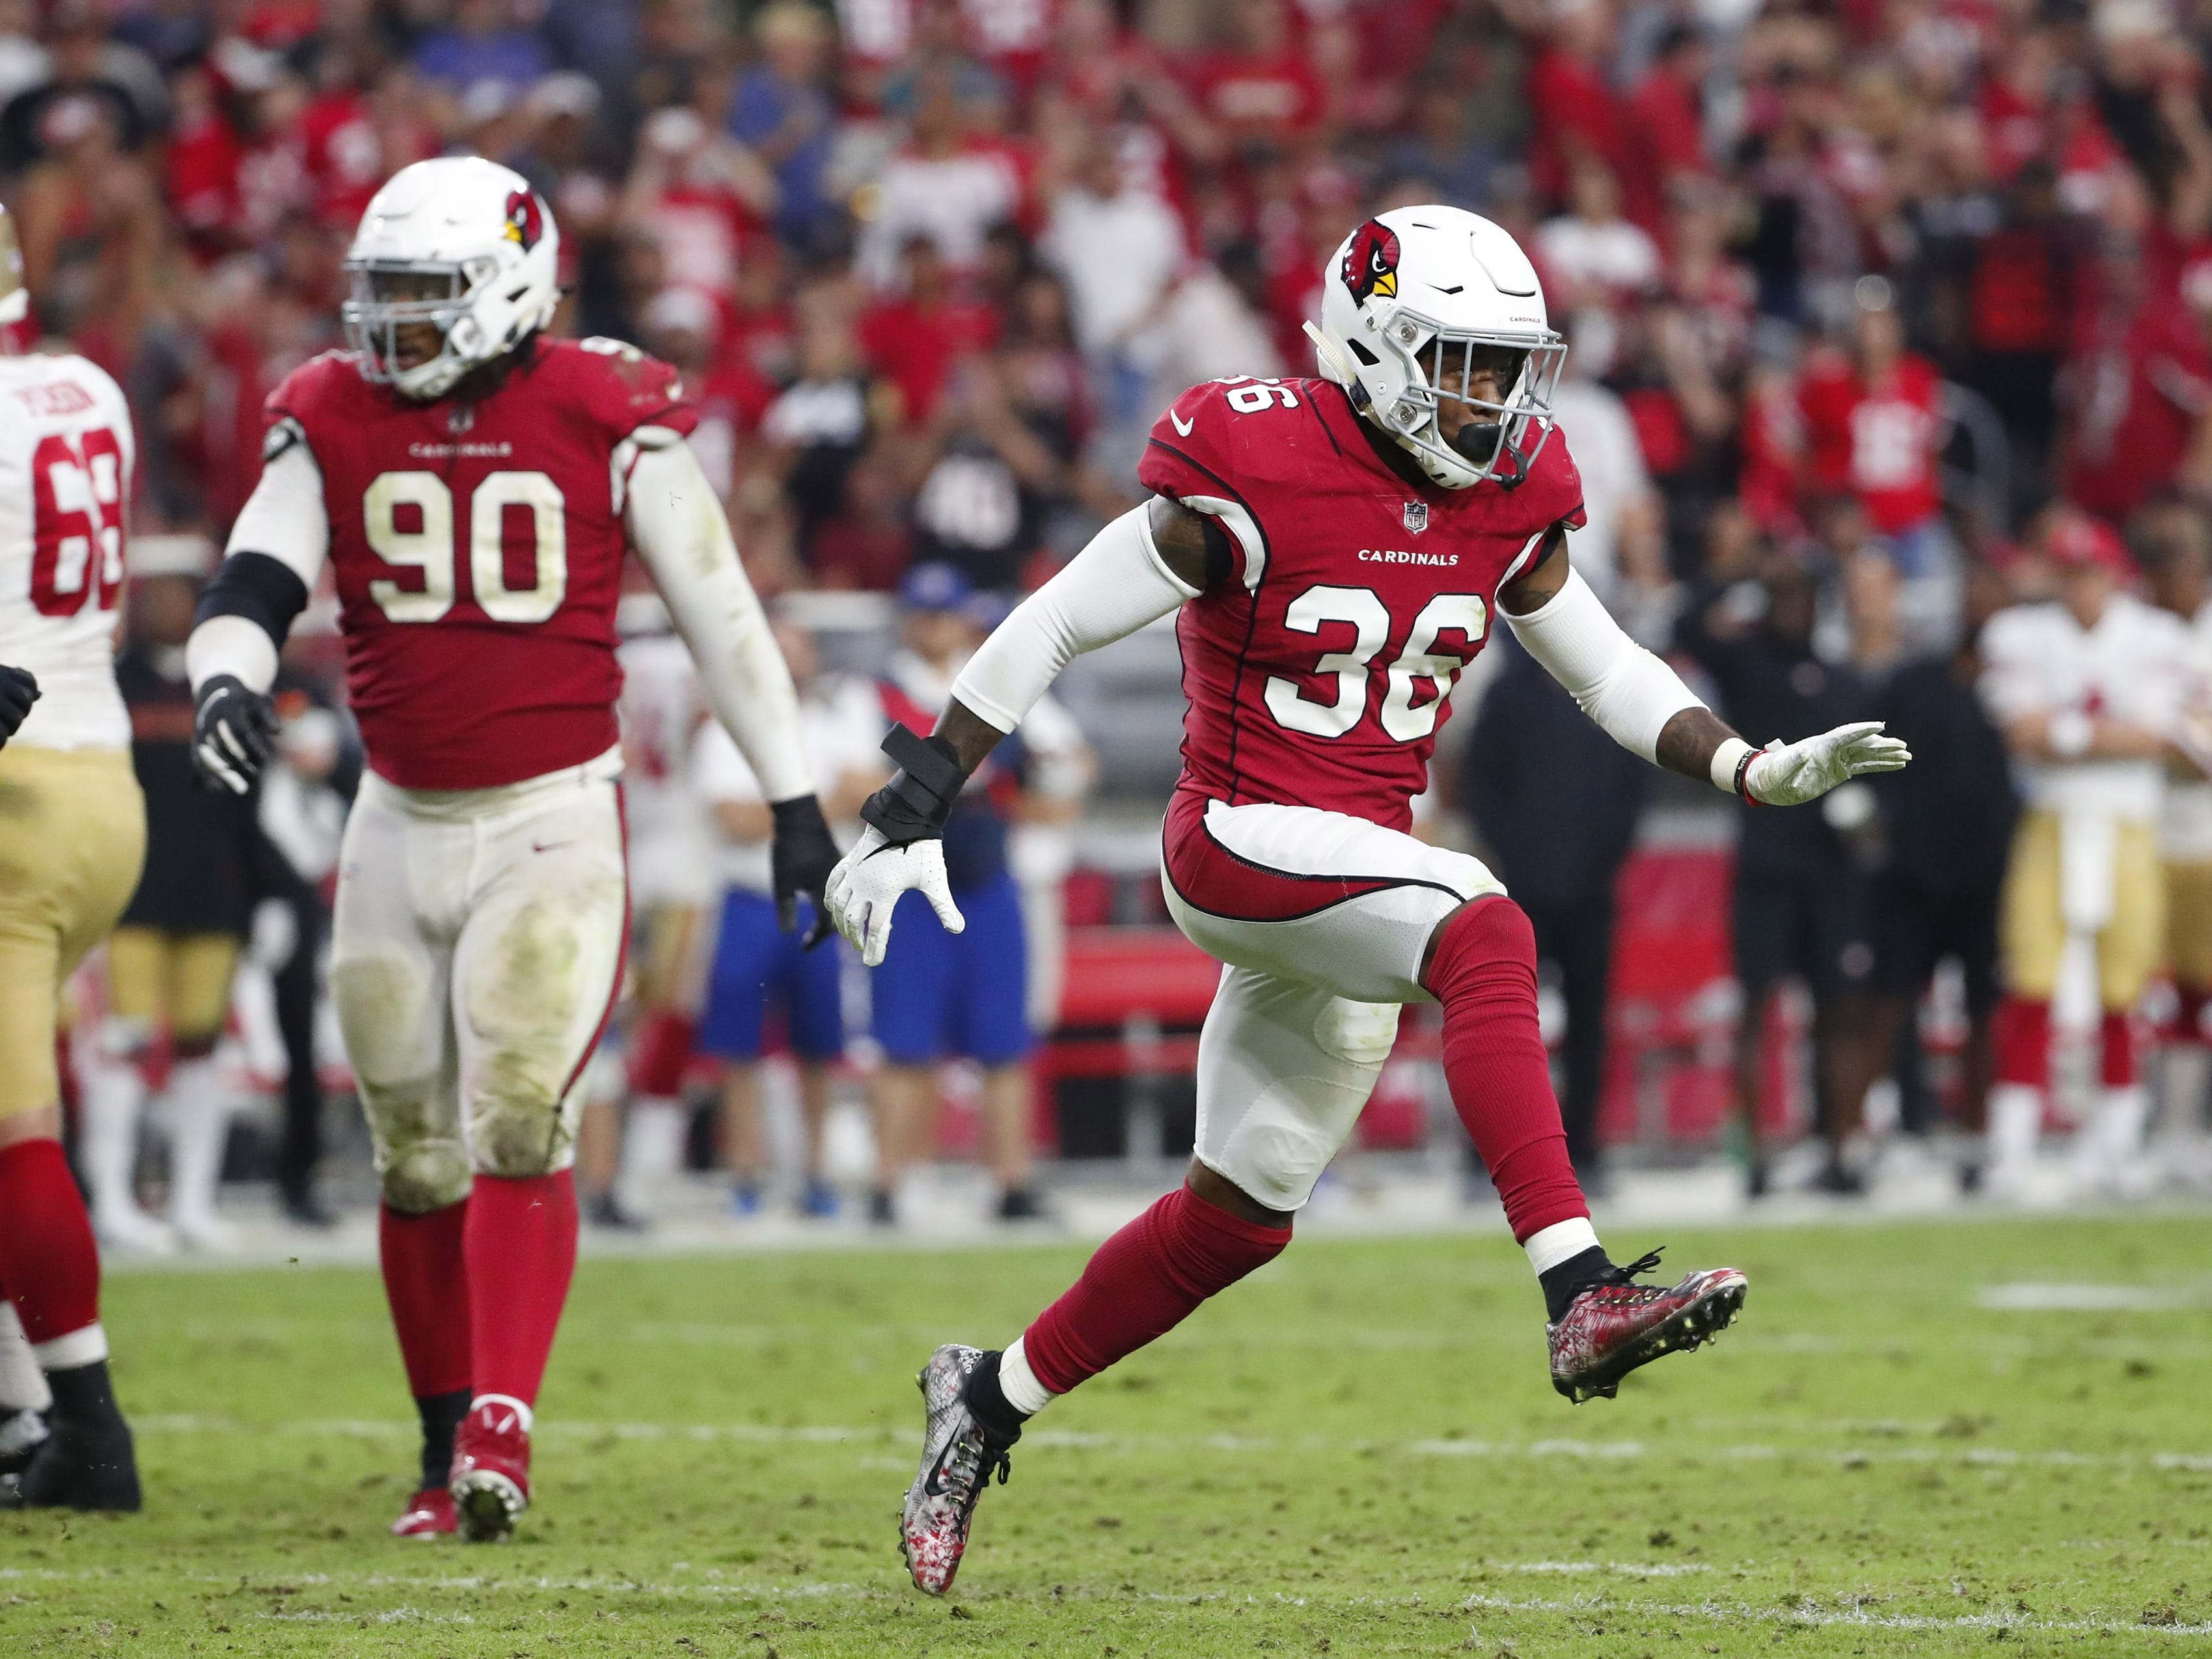 Arizona Cardinals strong safety Budda Baker (36) reacts after a sack In the fourth quarter during NFL action against the San Francisco 49ers on Oct. 28 at State Farm Stadium.